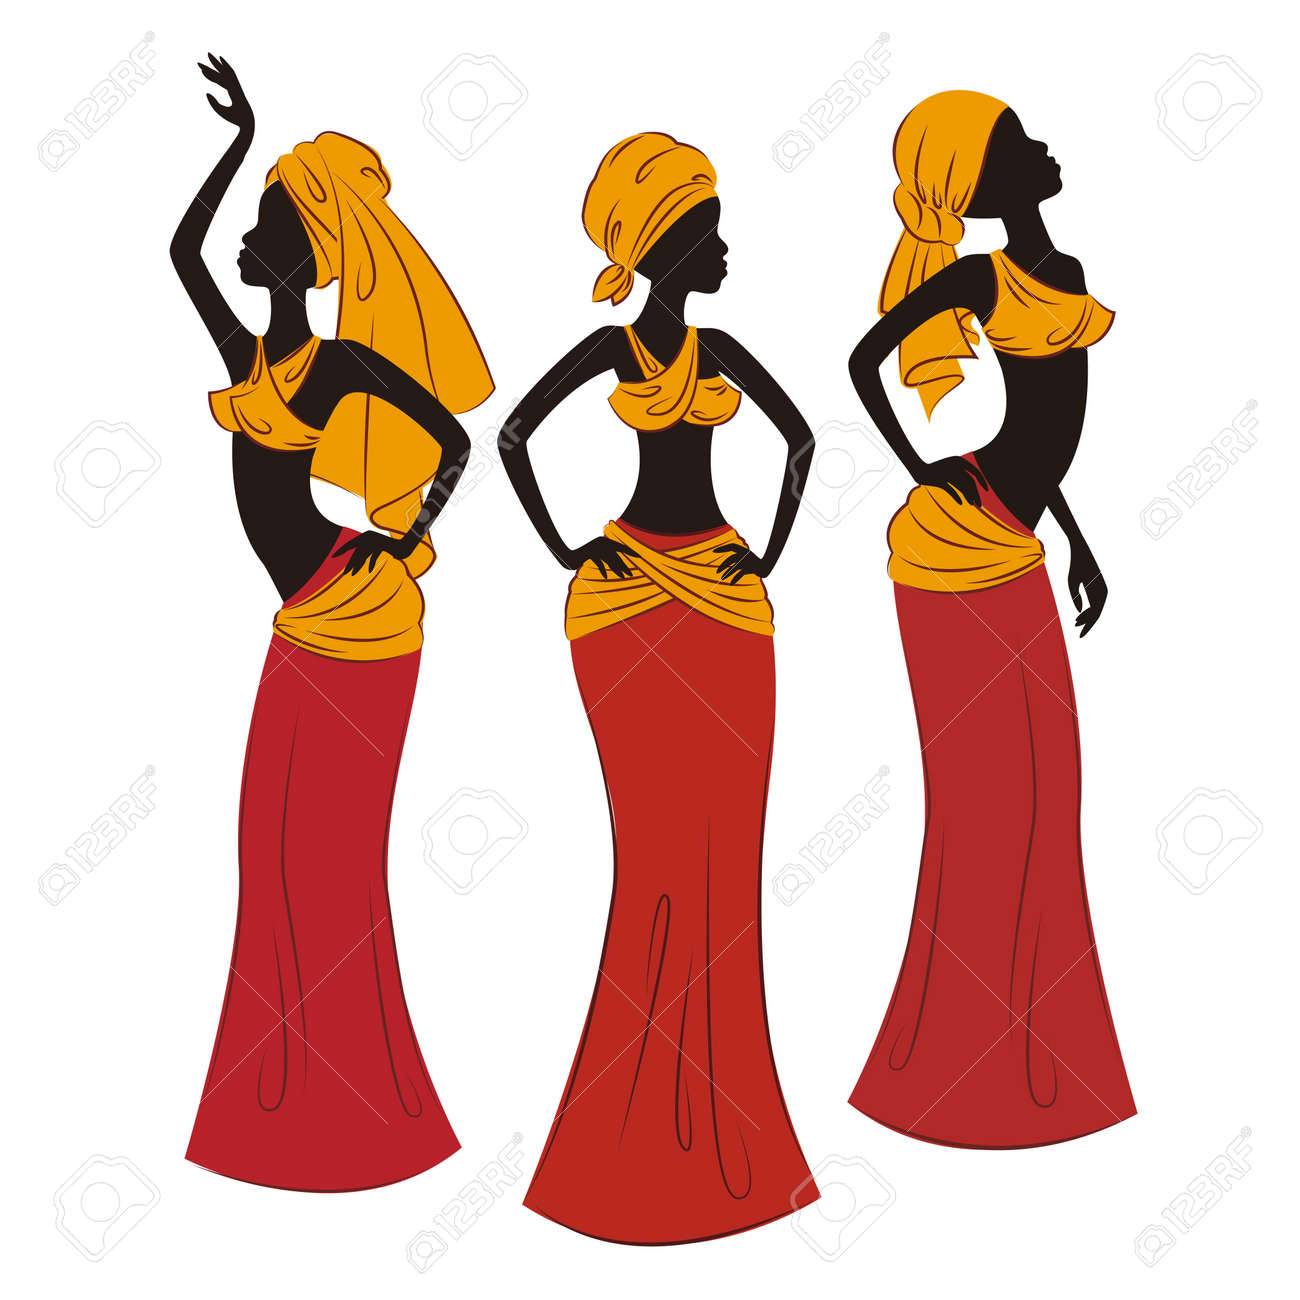 Beautiful ethnic women traditionally dancing illustration isolated on white background Stock Vector - 20361417